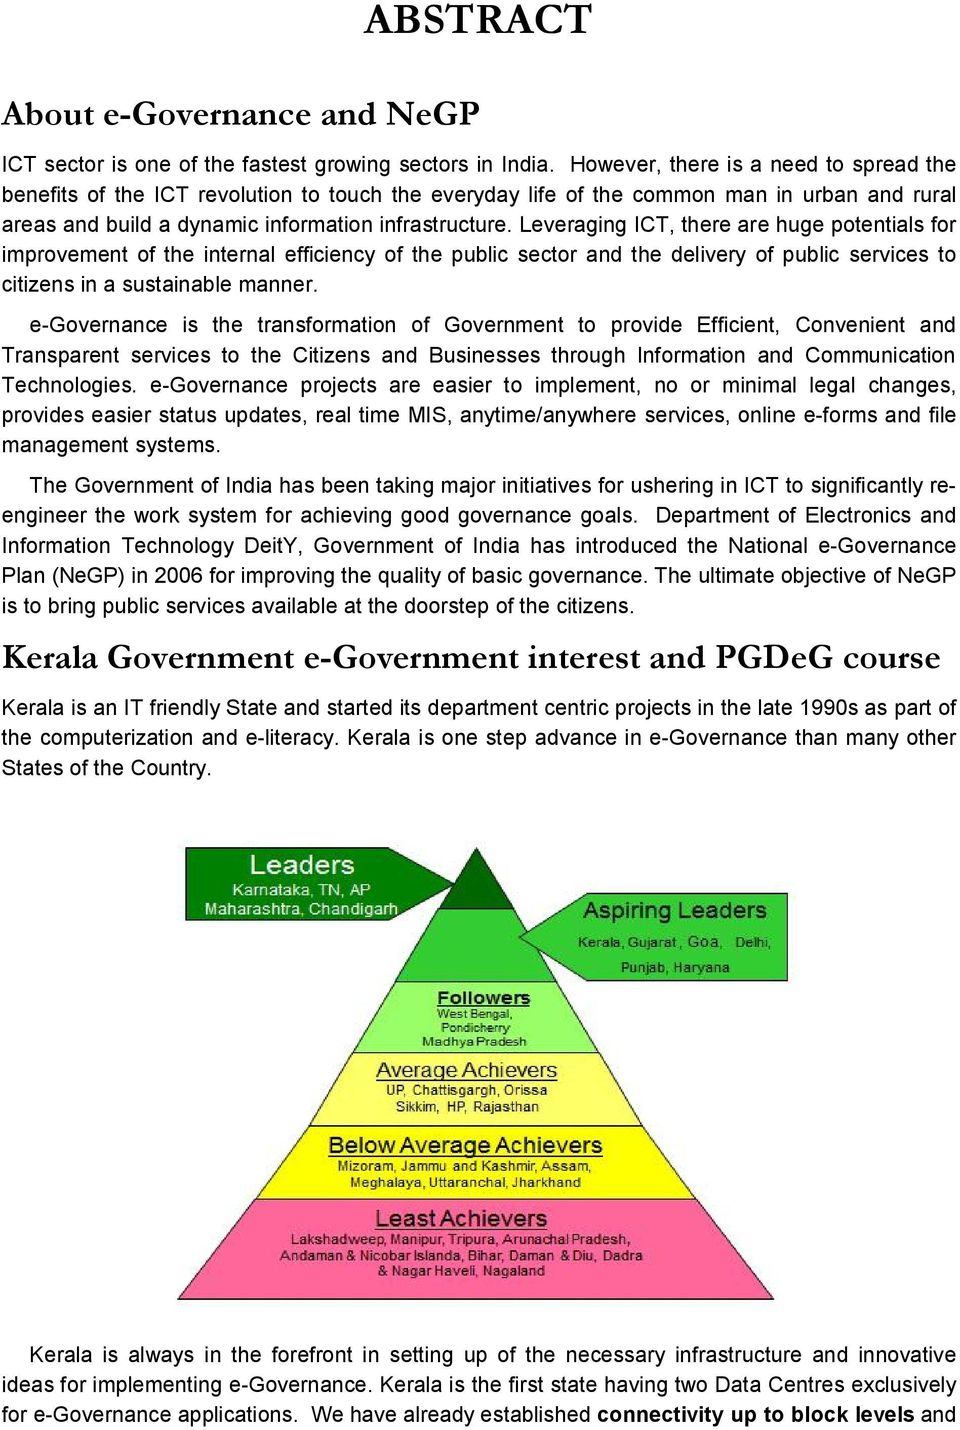 Leveraging ICT, there are huge potentials for improvement of the internal efficiency of the public sector and the delivery of public services to citizens in a sustainable manner.